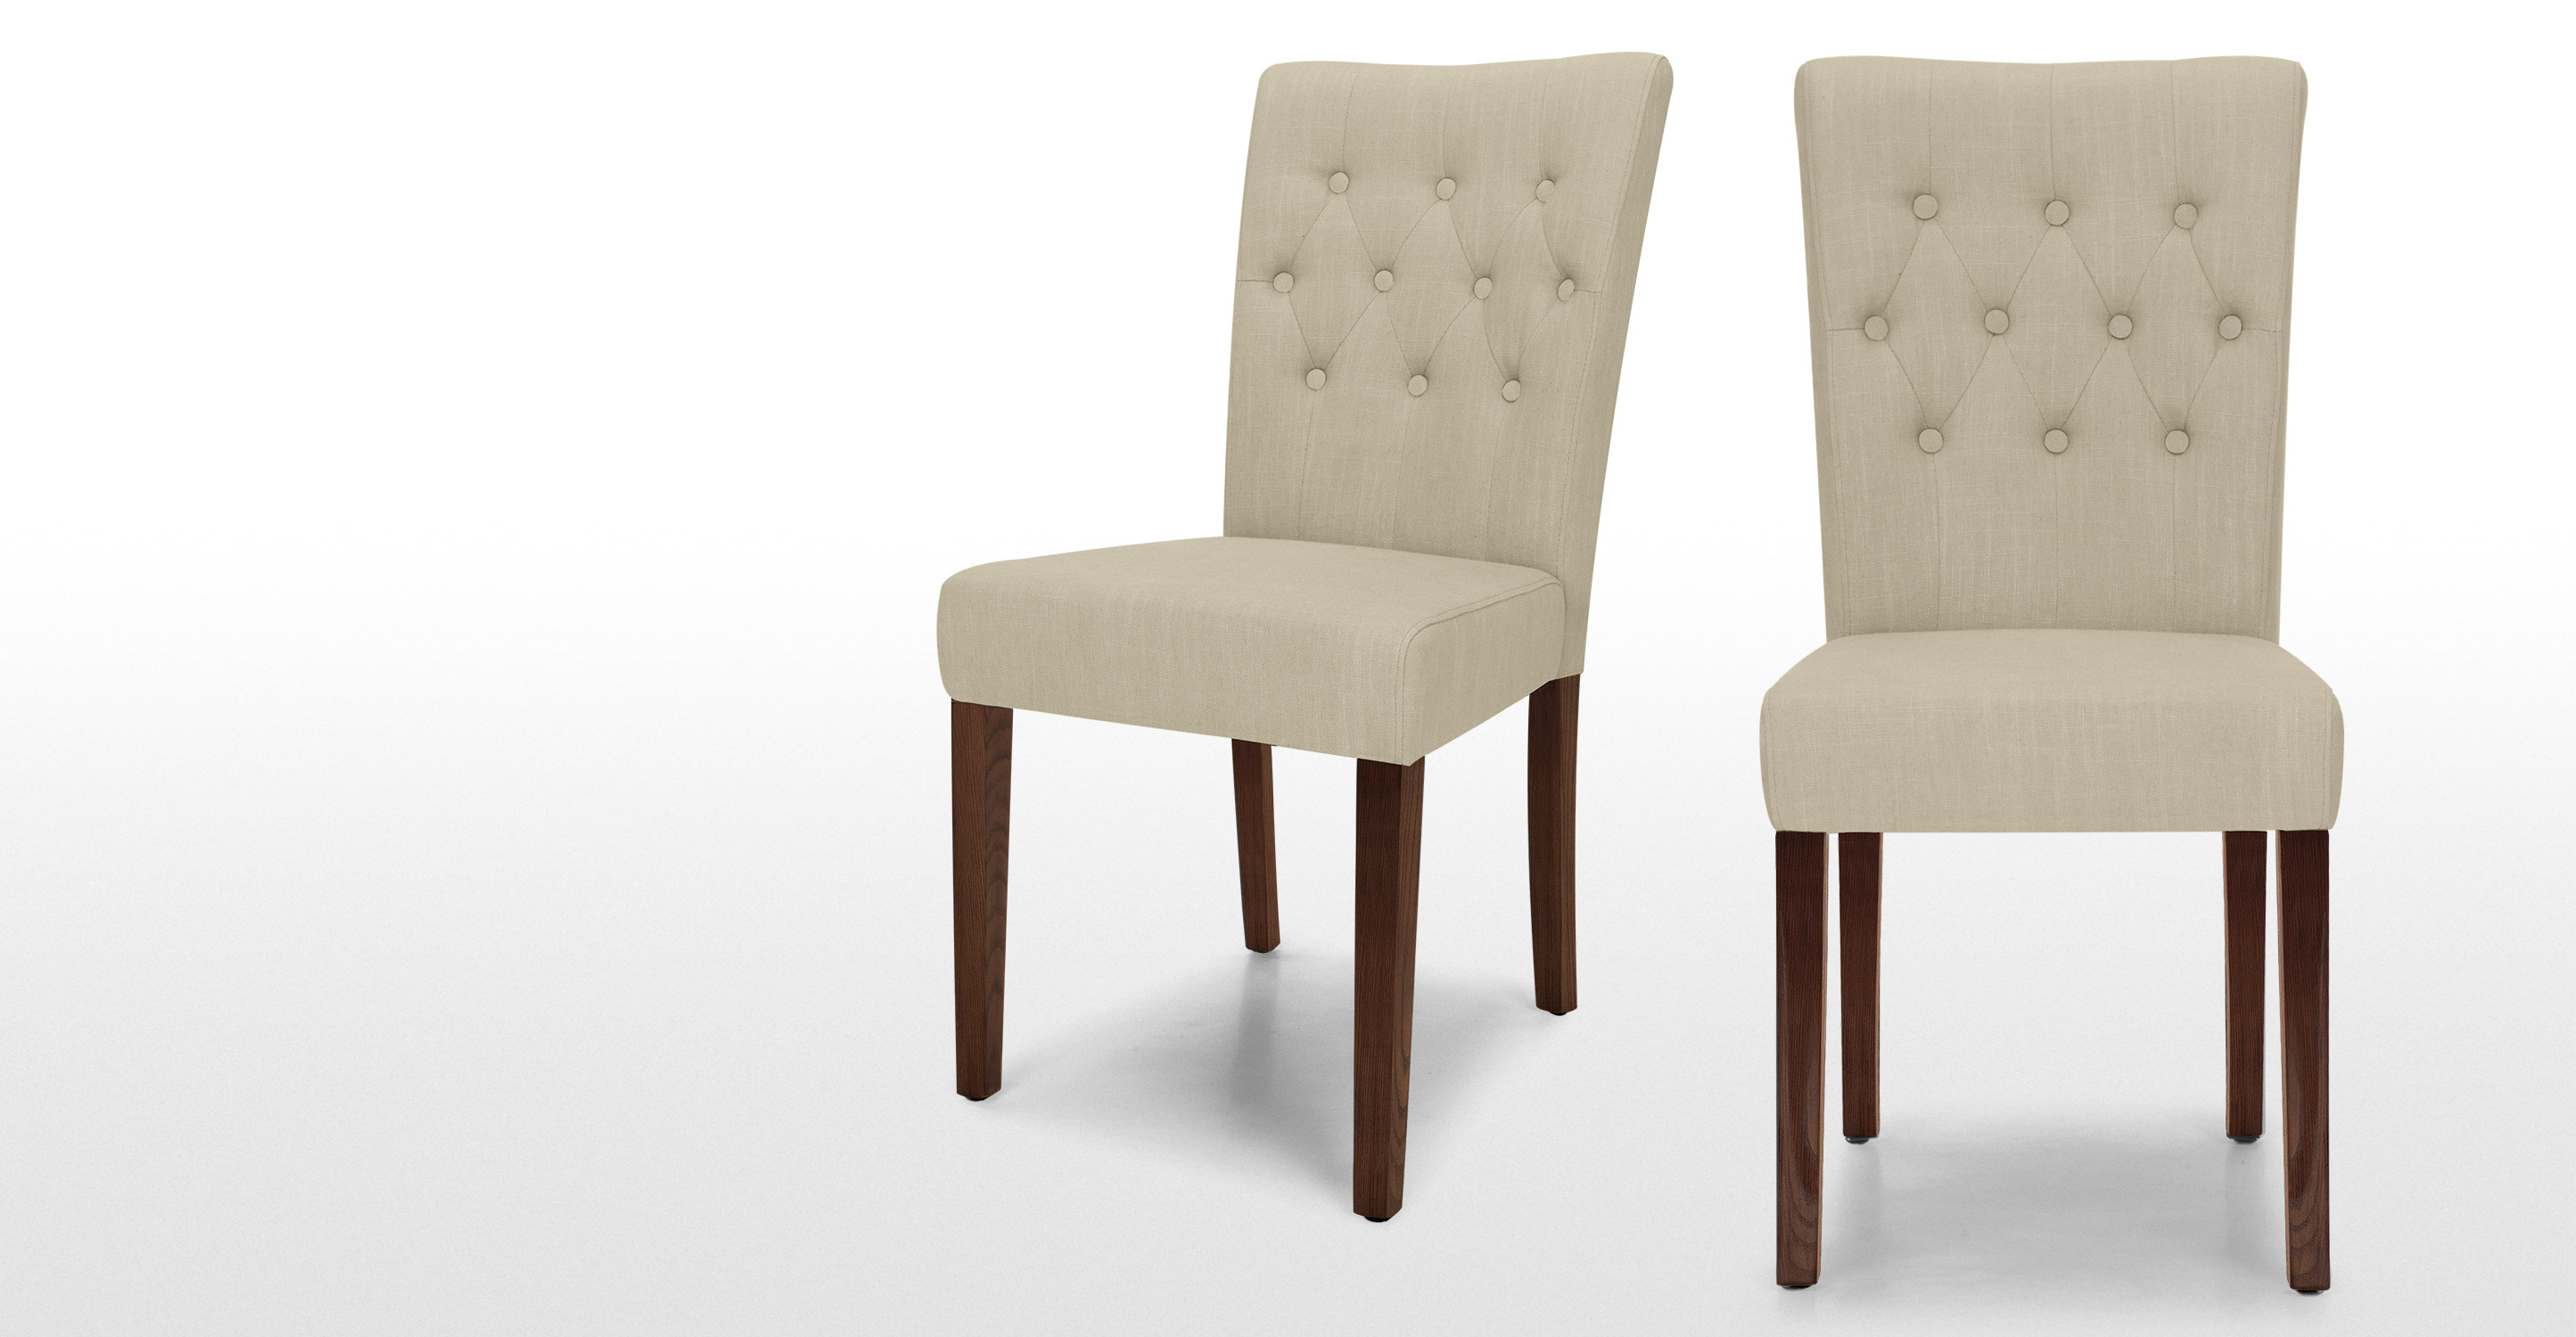 Pair of Flynn Dining Chairs in biscuit beige